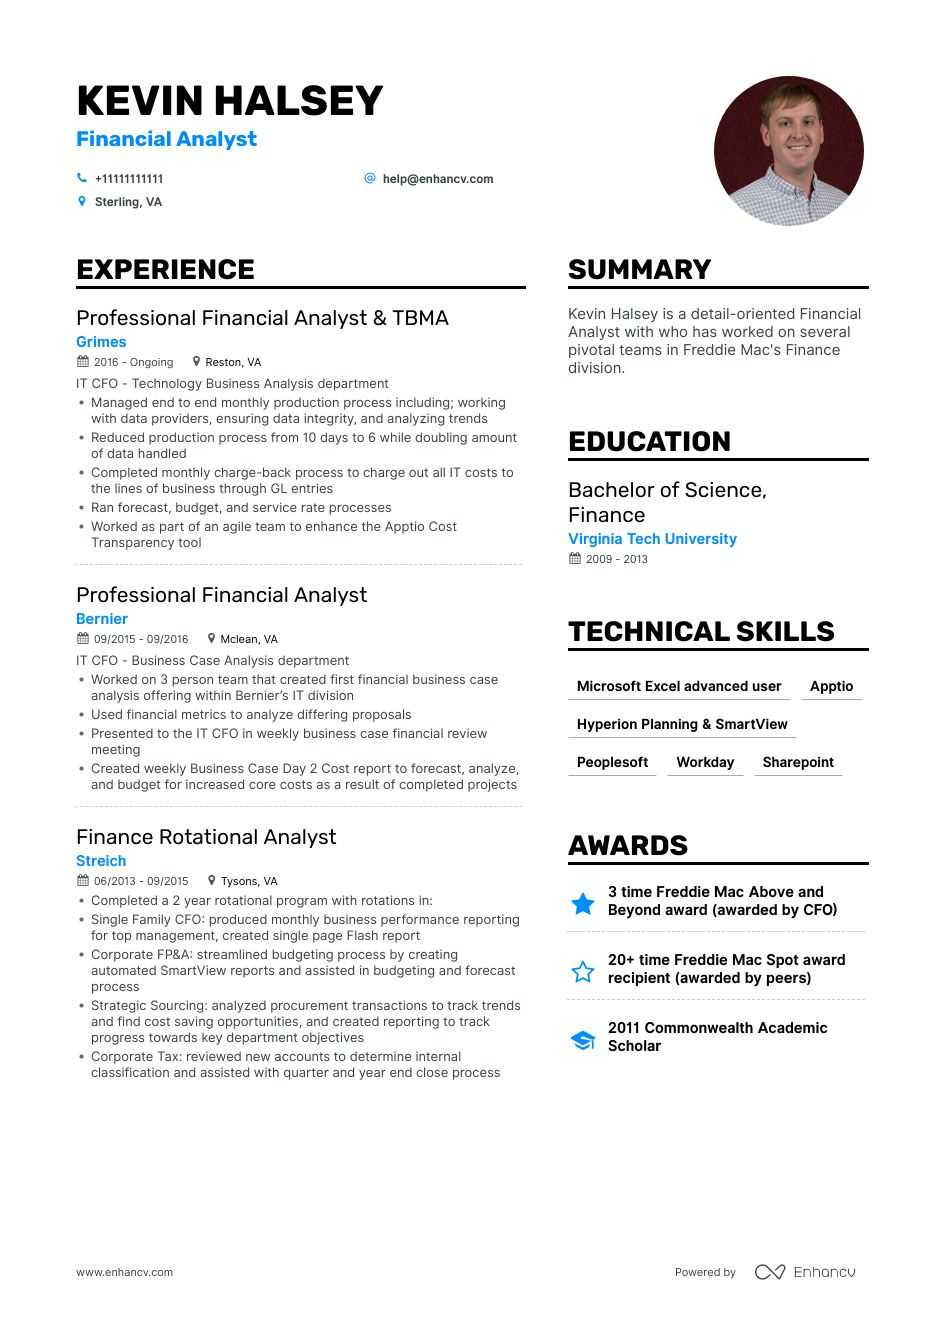 financial analyst resume example for enhancv sample government template microsoft word Resume Financial Analyst Resume Sample